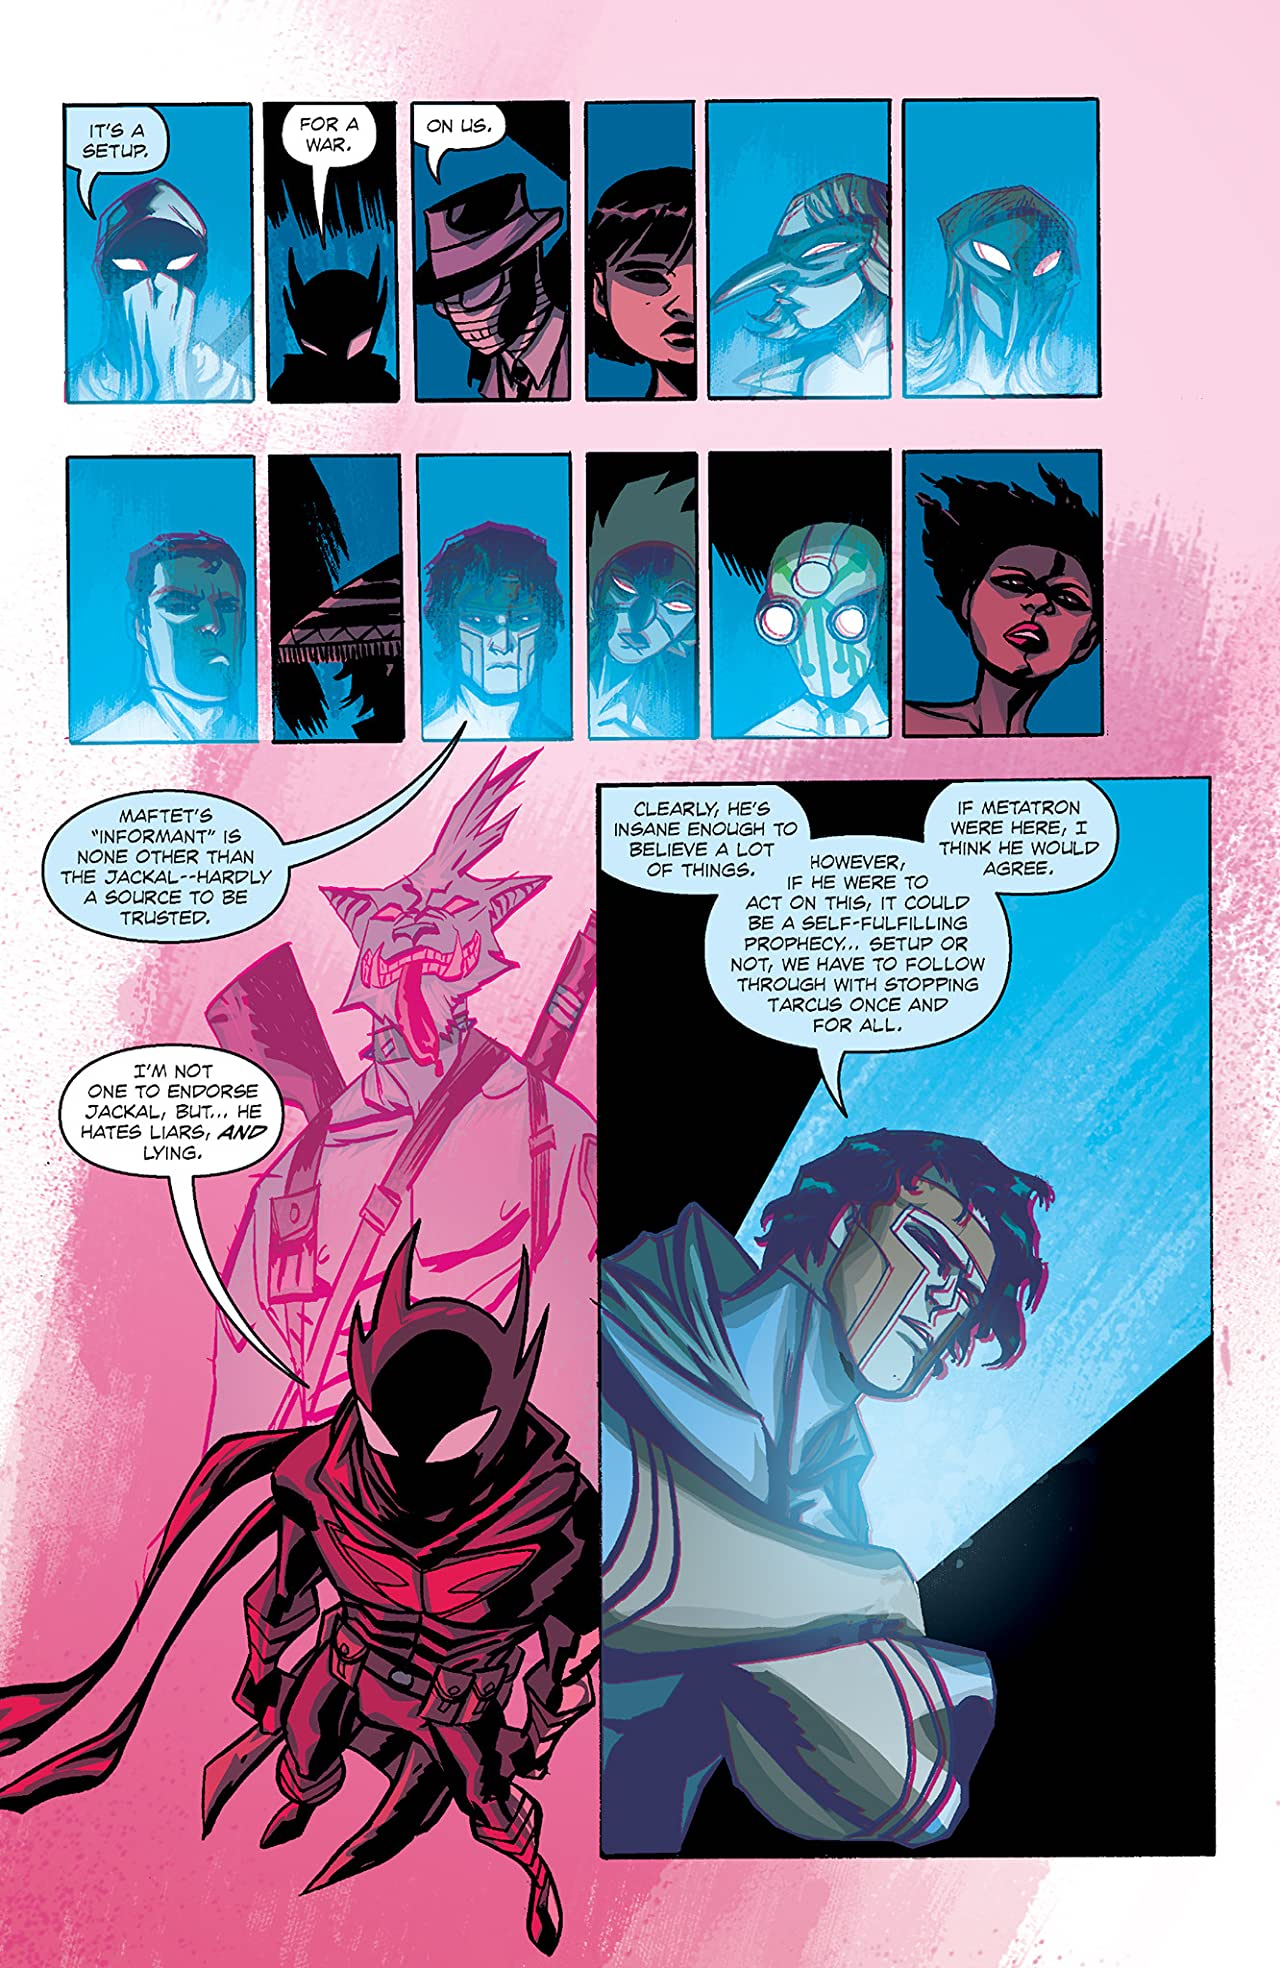 Michael Avon Oeming's The Victories: Transhuman #3